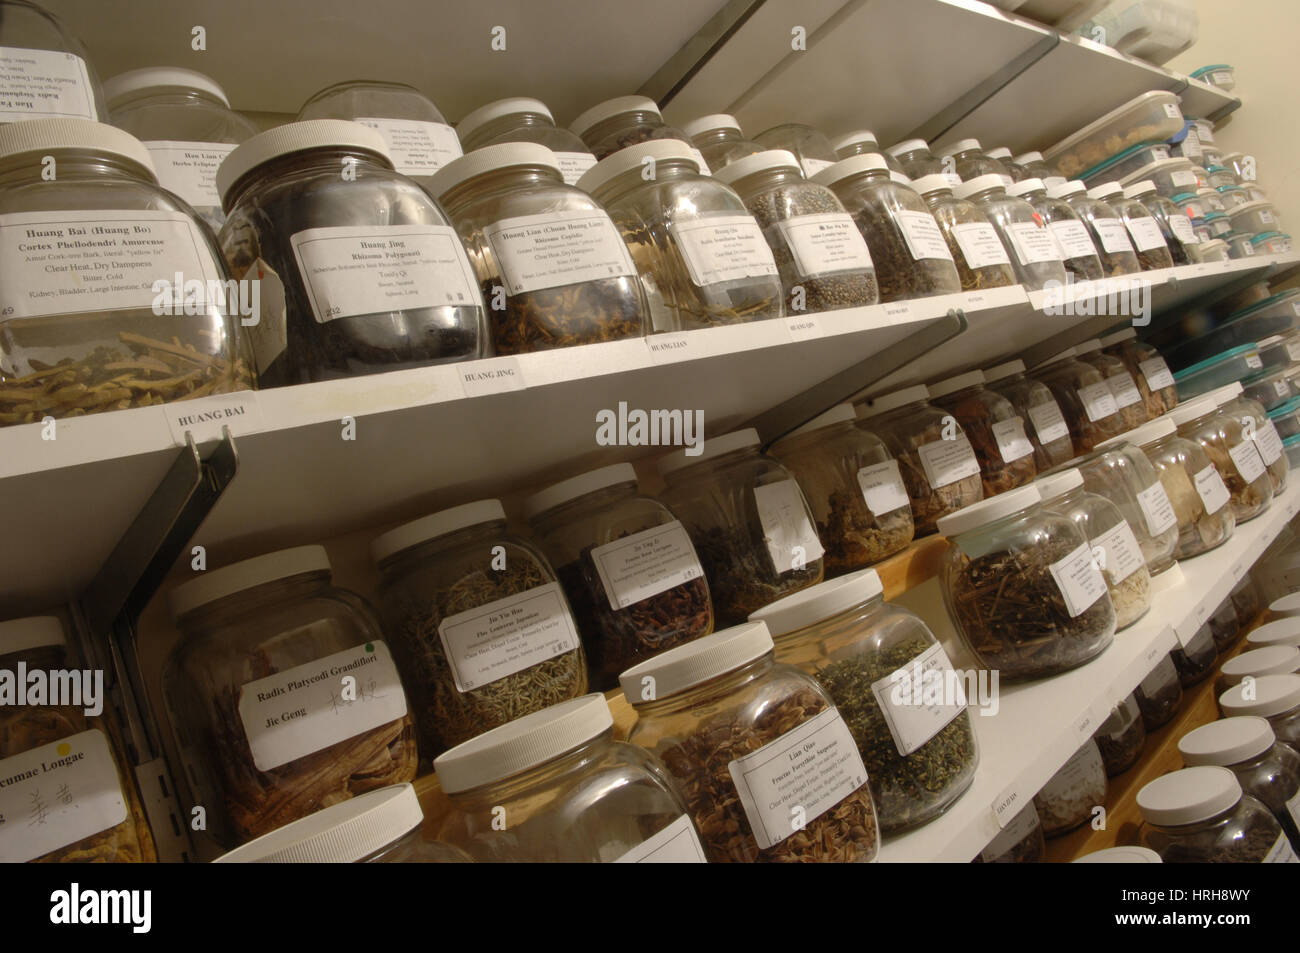 Dried medicinal herbs - Stock Image